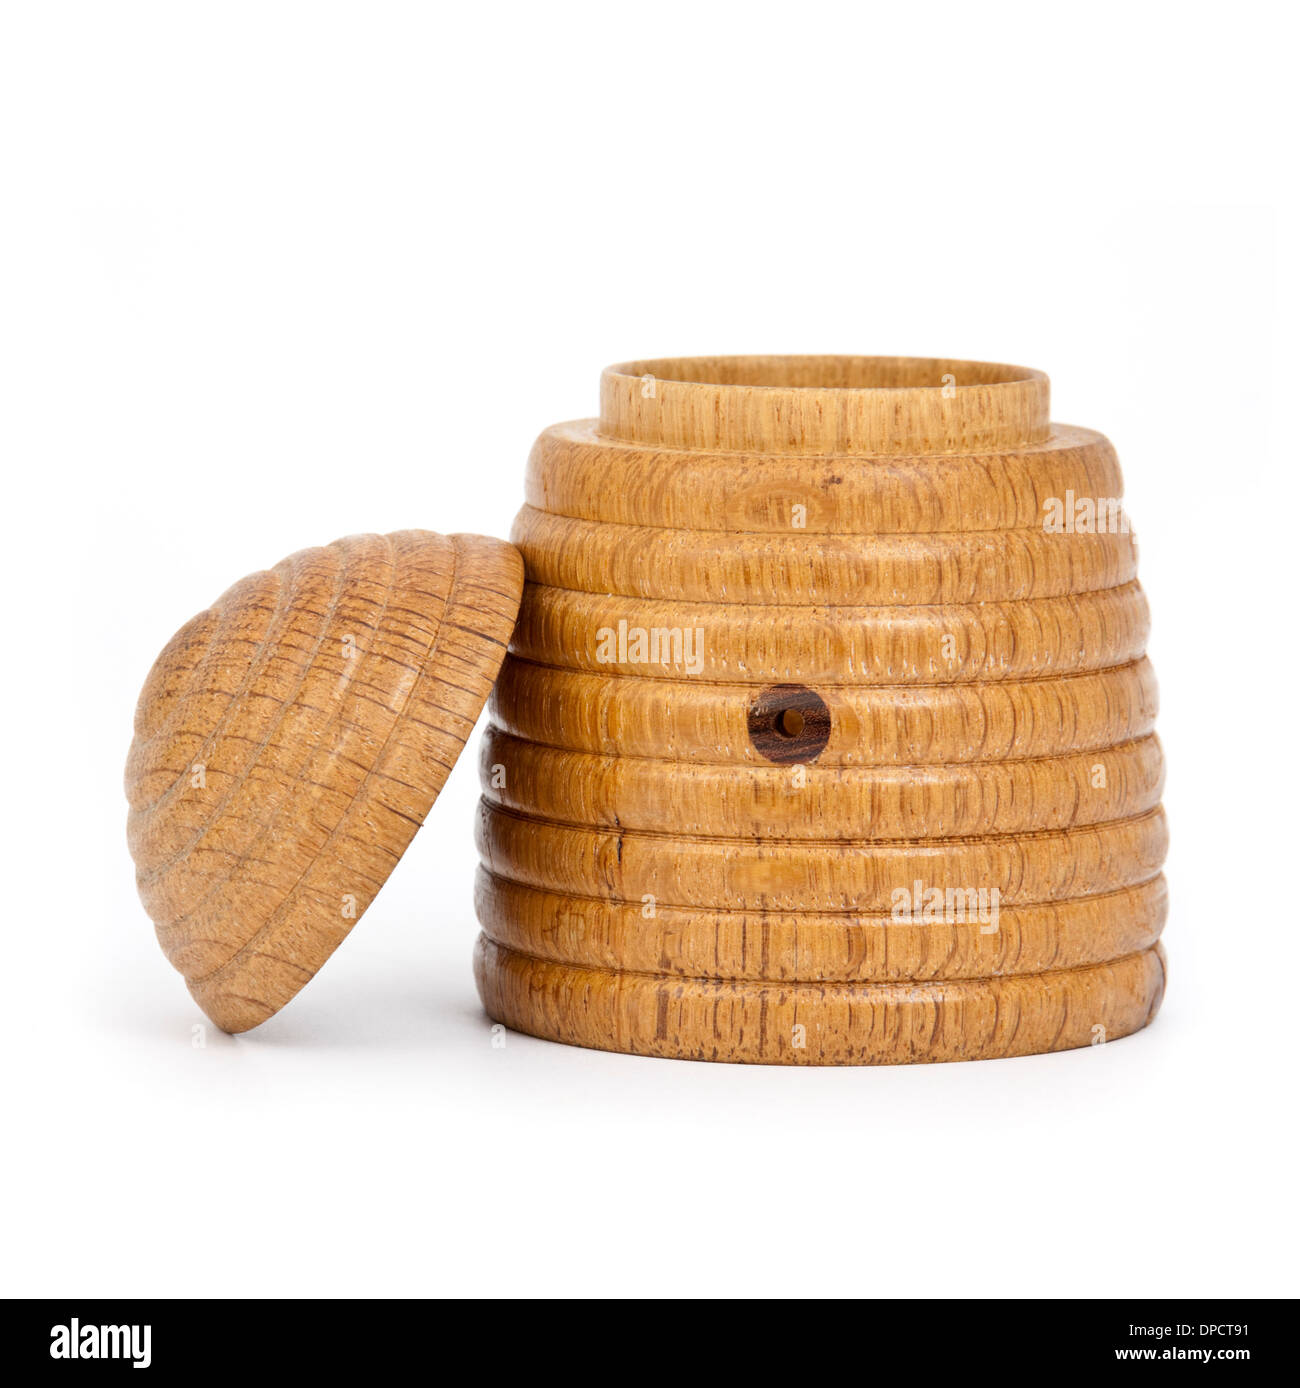 Vintage wooden beehive-shaped honey pot - Stock Image